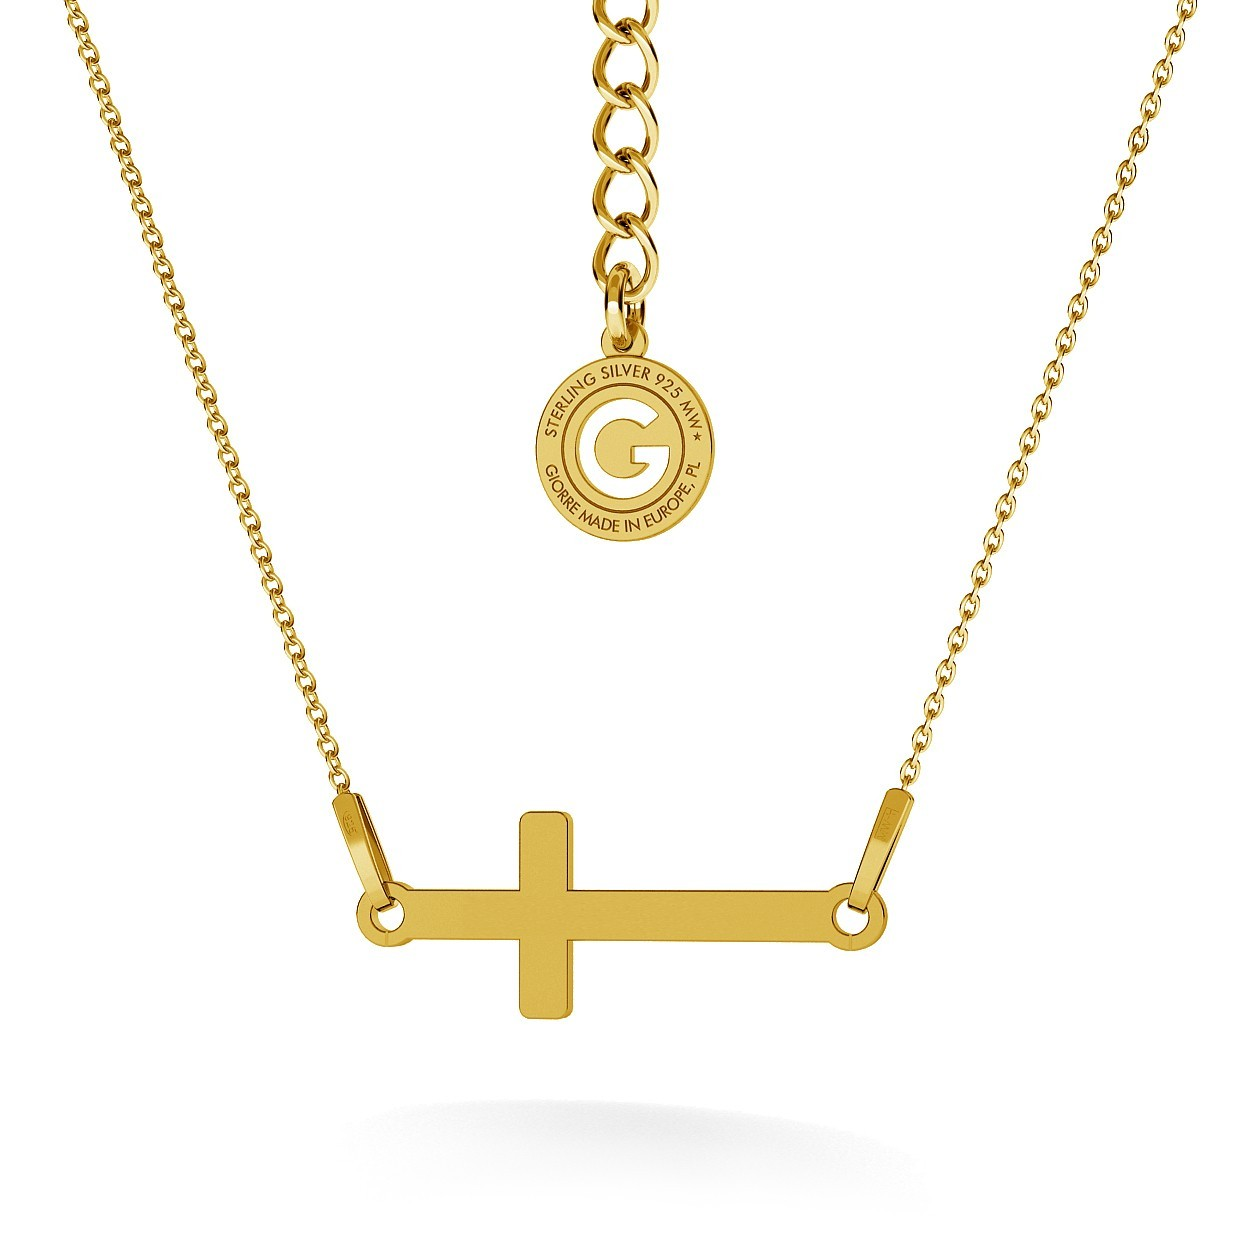 HORIZONTAL CROSS NECKLACE, RHODIUM OR 18K GOLD PLATED, RHODIUM OR 18K GOLD PLATED